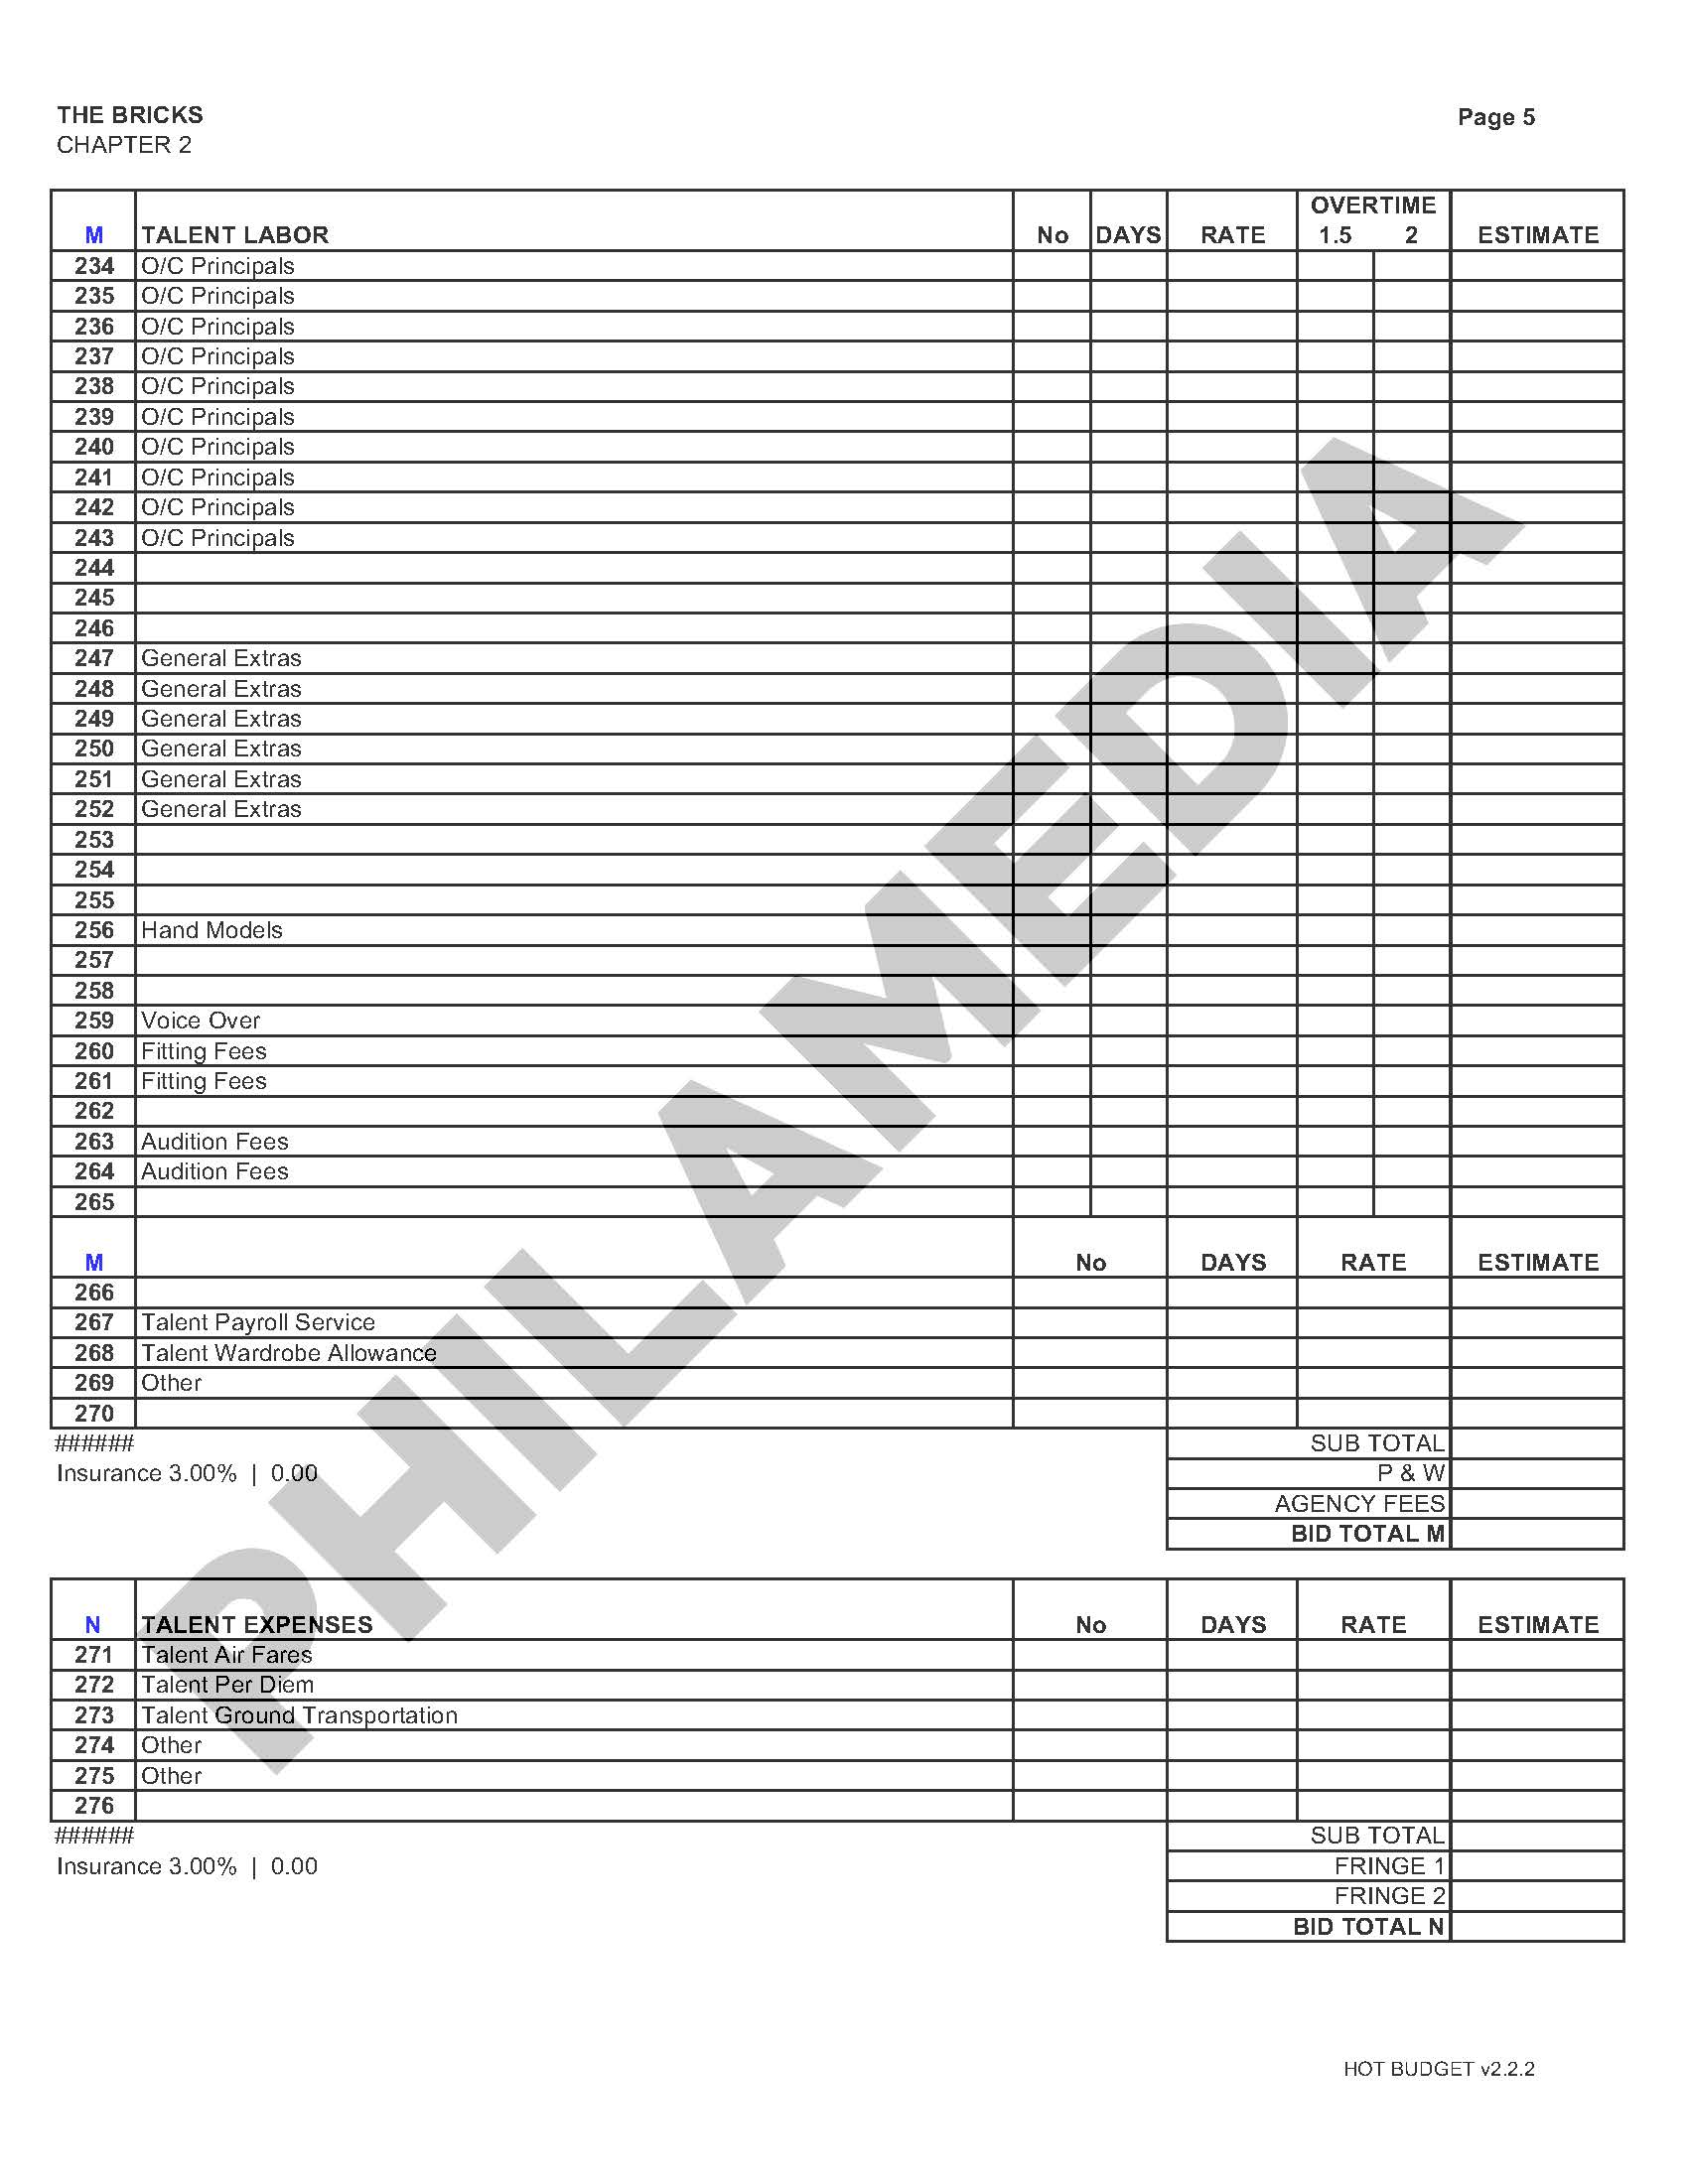 The Bricks_Chapter 2 Budget Final_Page_7.jpg